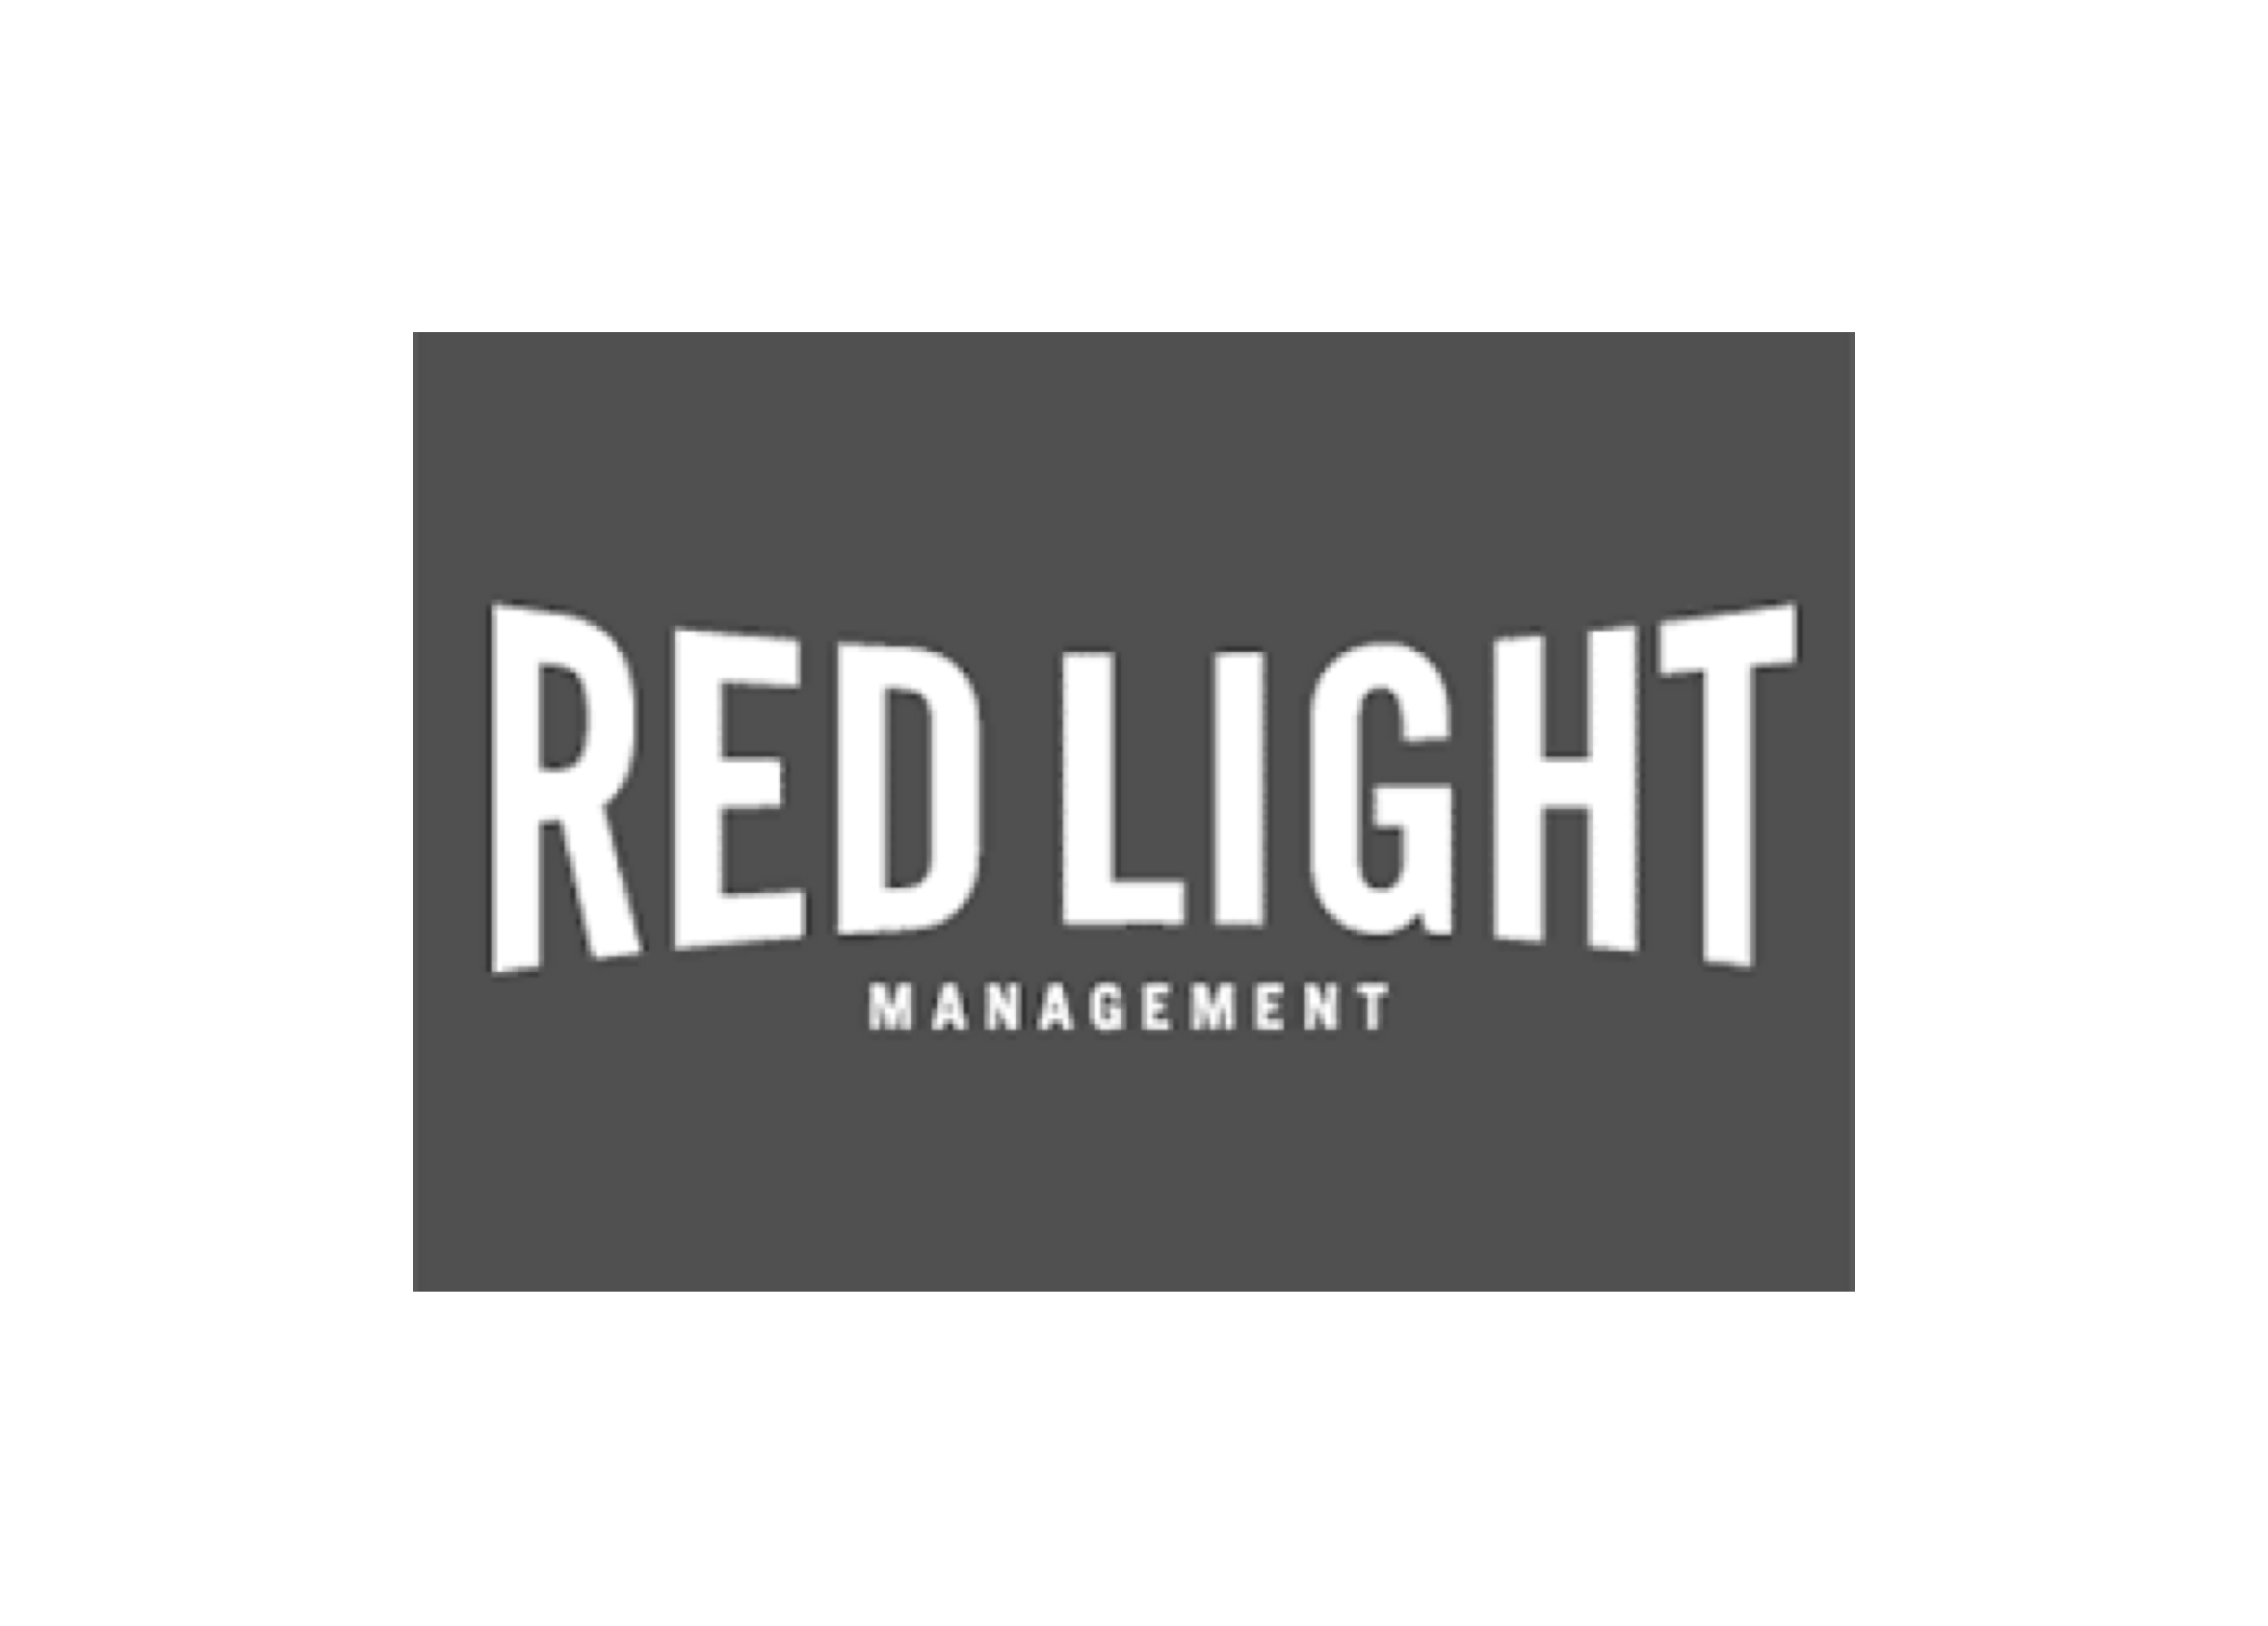 Red Light Management company logo